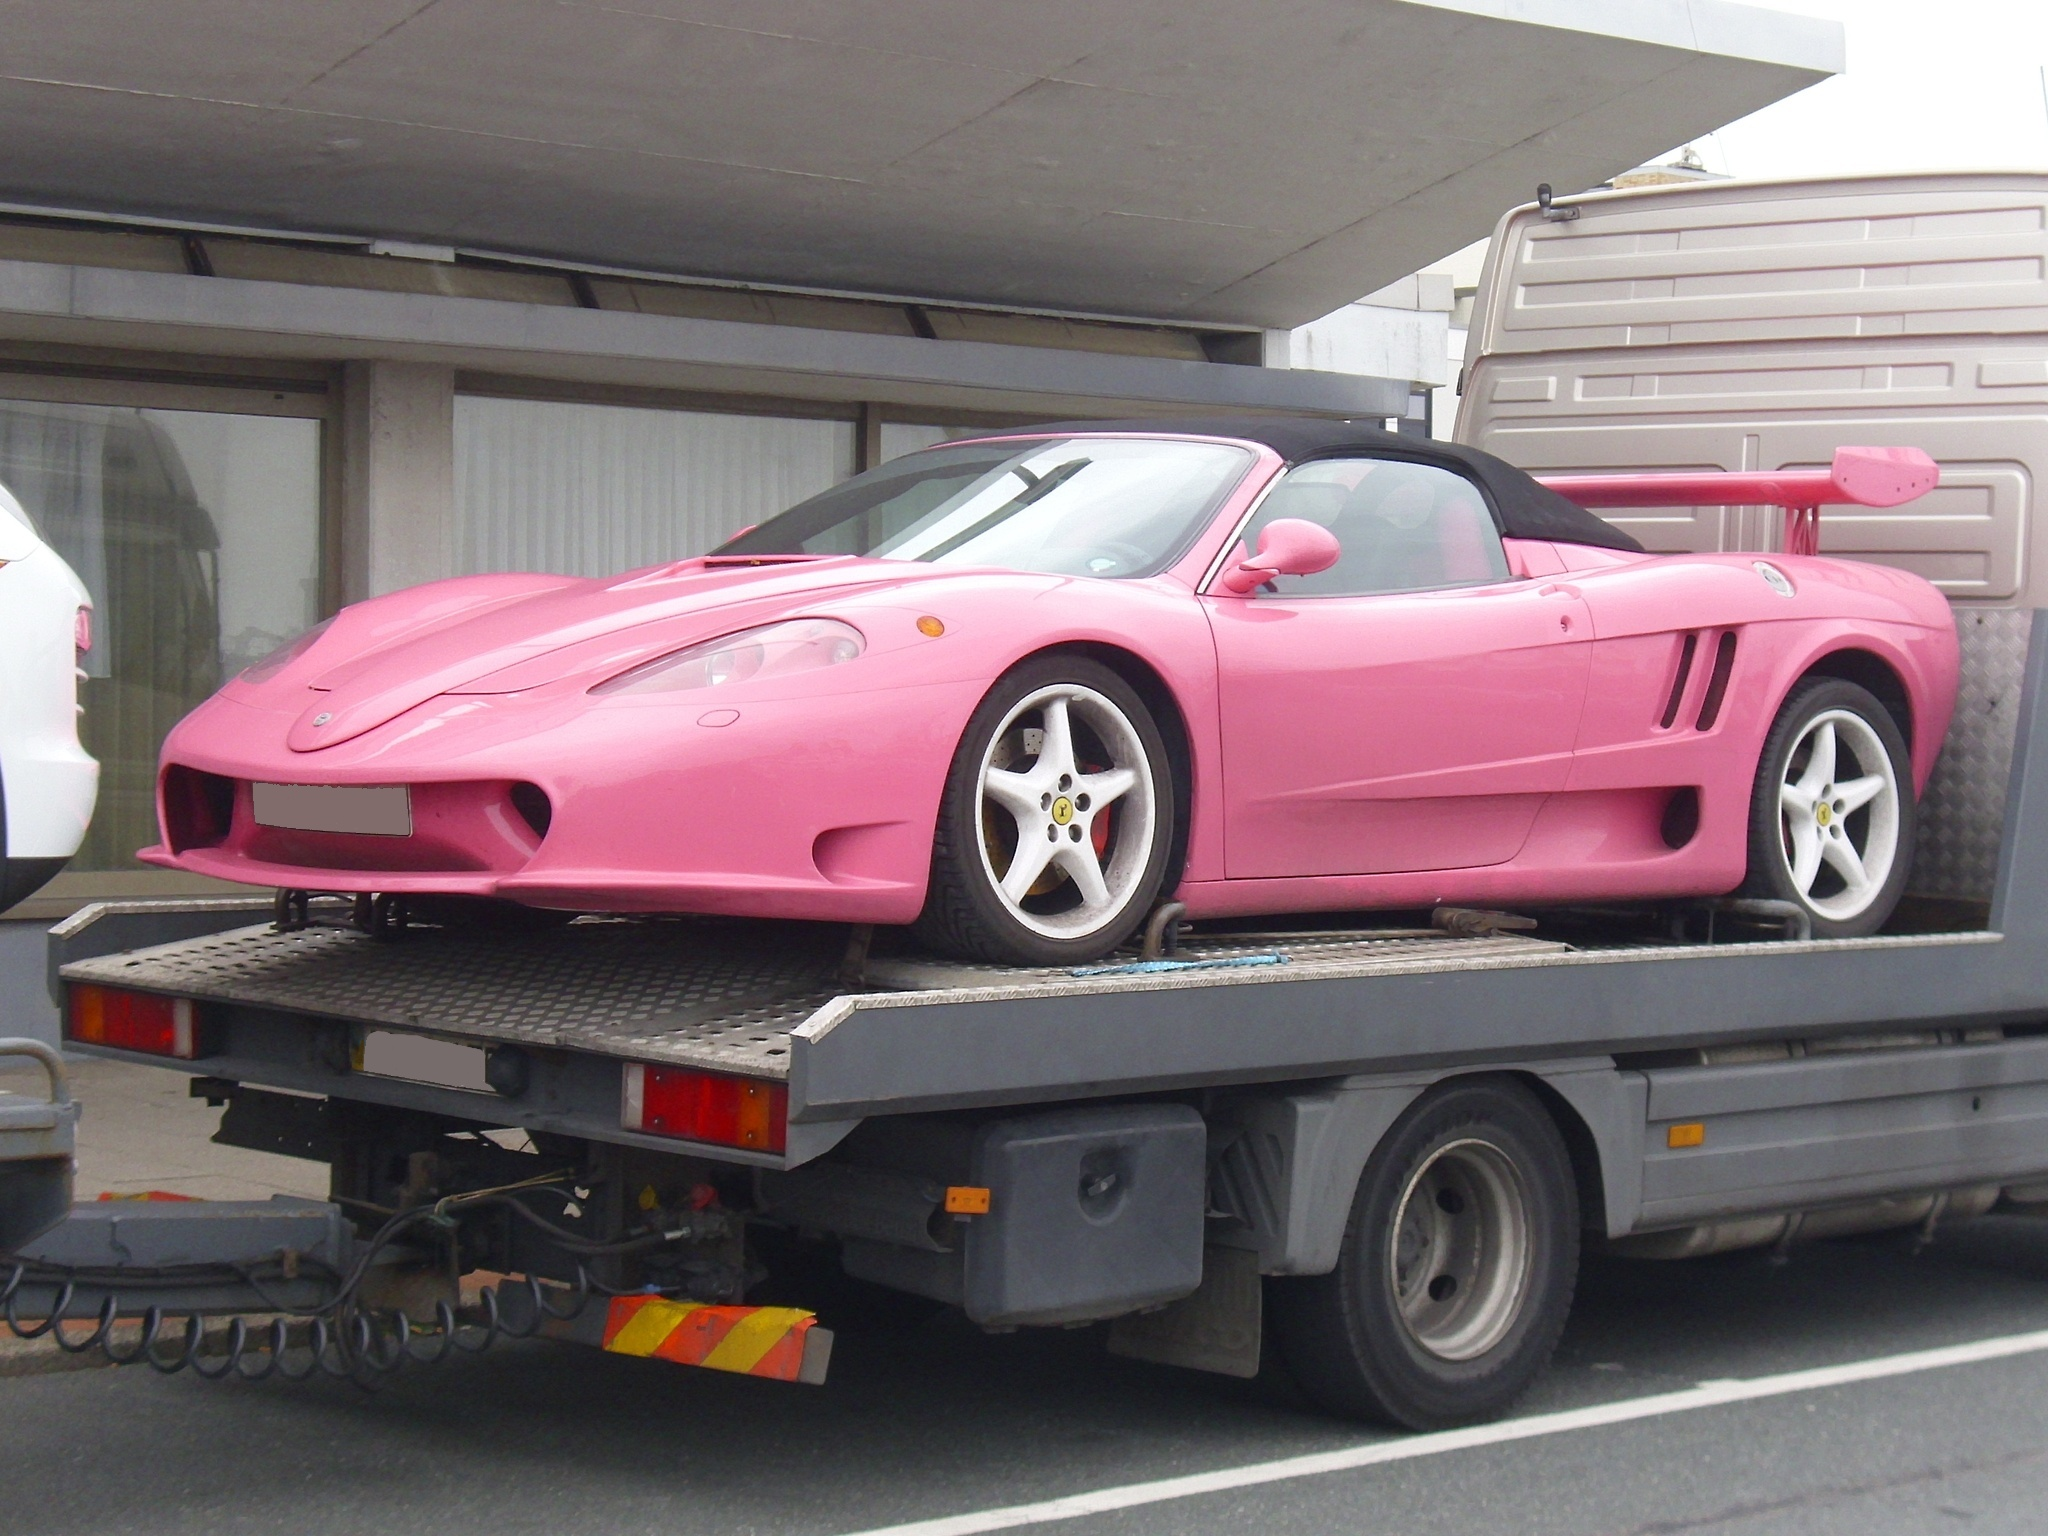 Pink Cars For Sale Uk